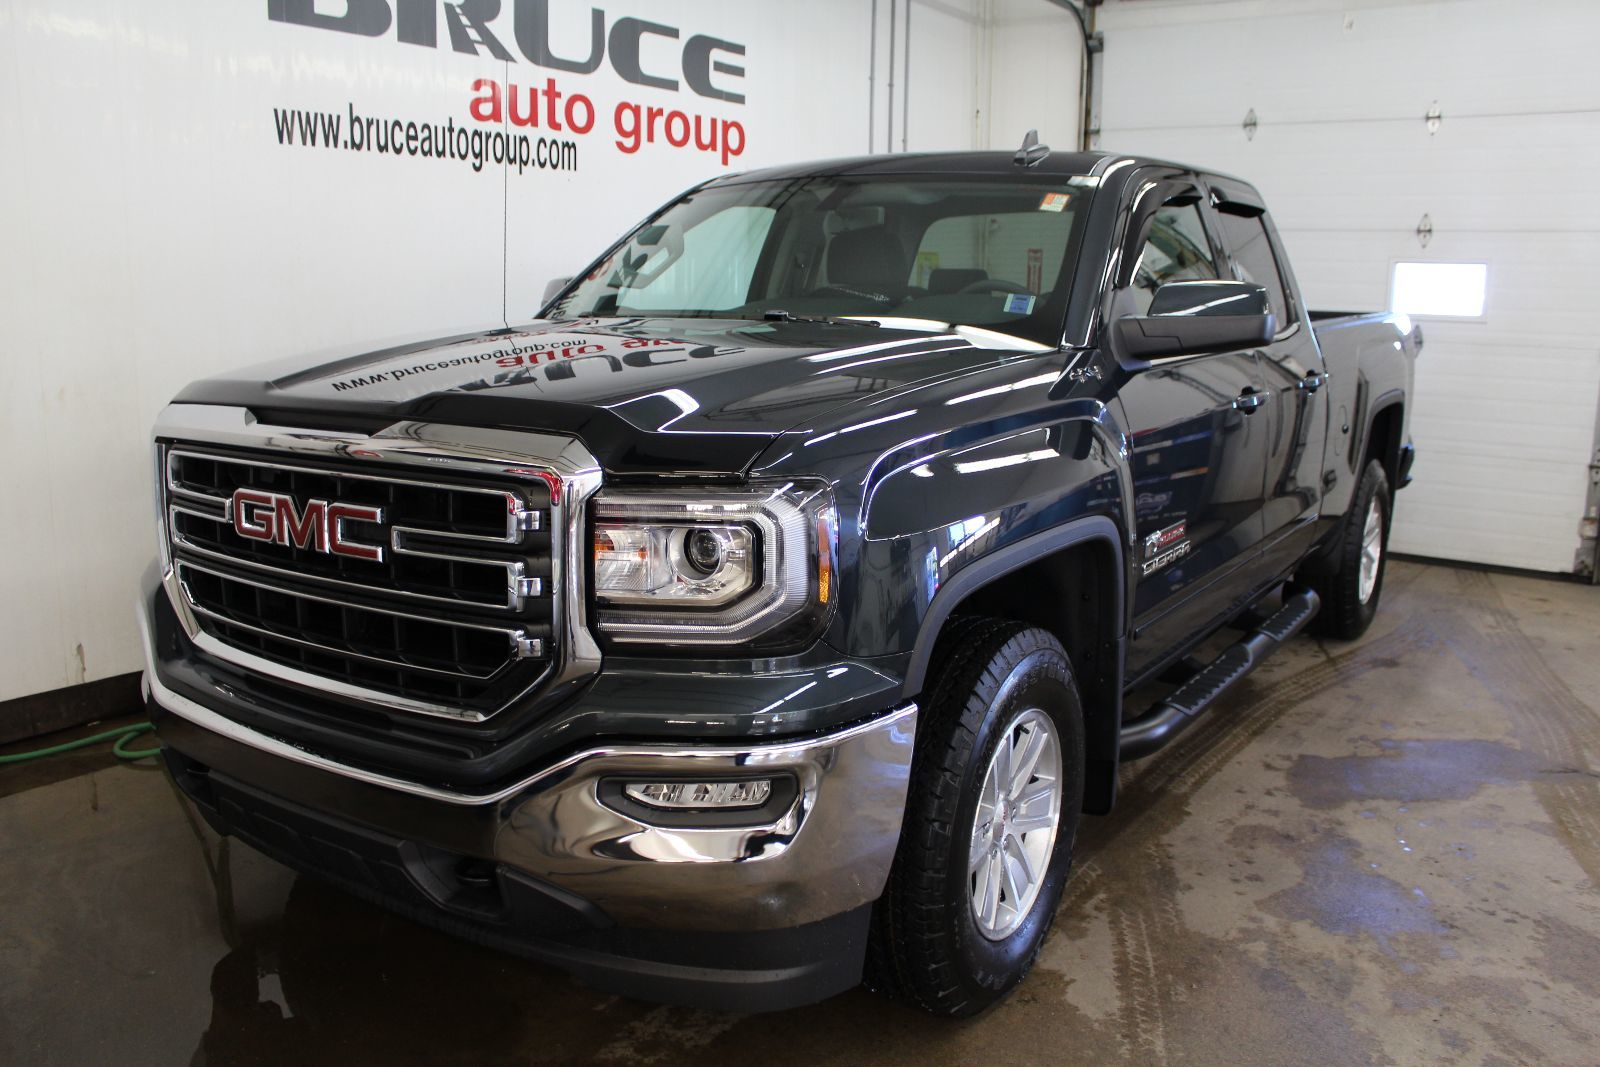 Llt also 5319936 together with Index as well 1509 Five Hard Working Features Of The 2017 Ford F Series Super Duty also 371835464657. on gmc terrain accessories